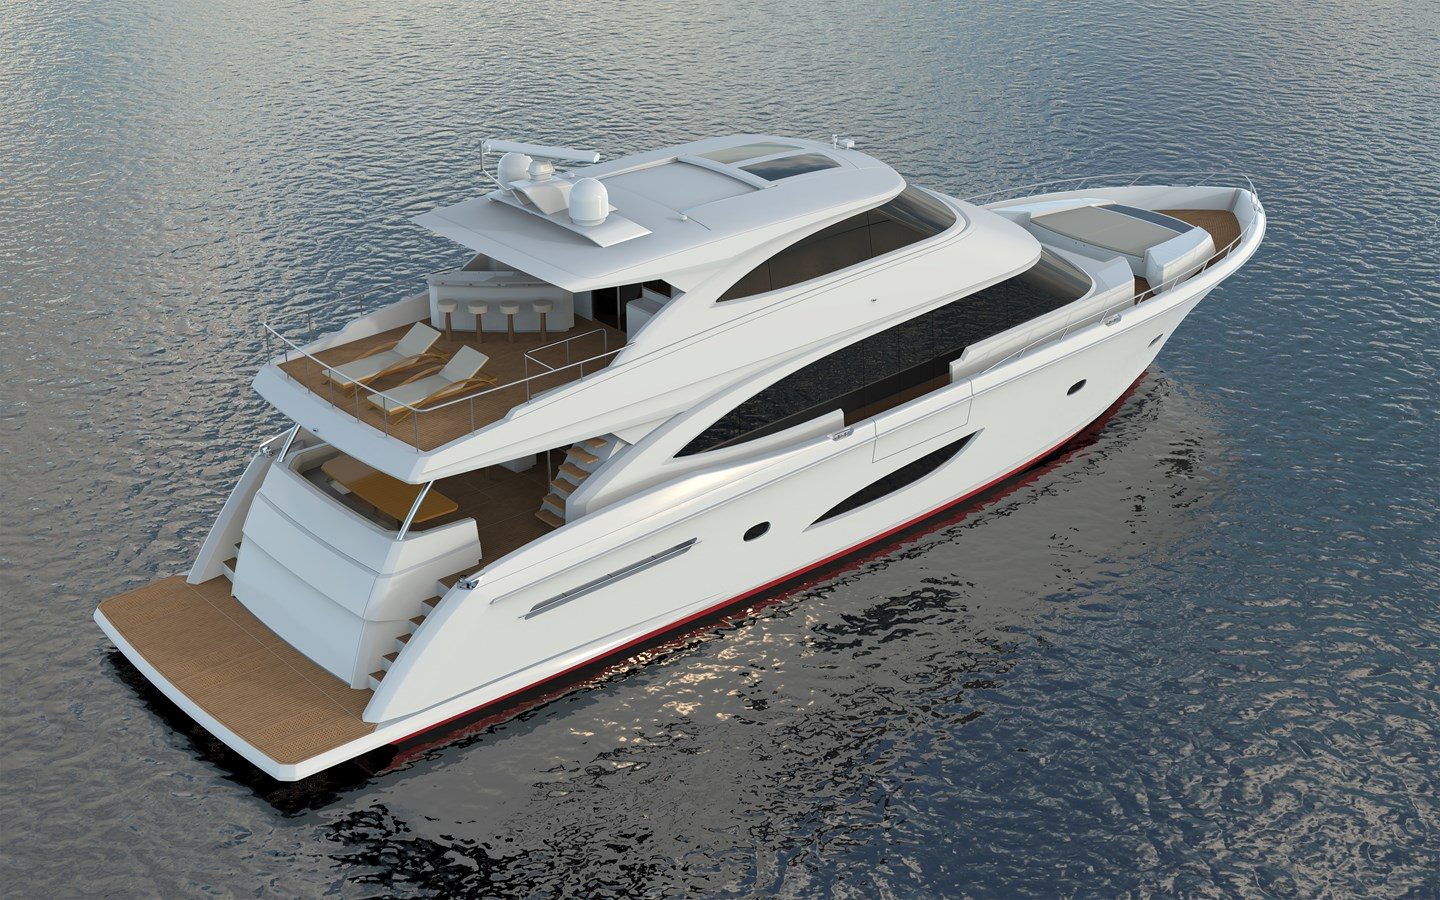 New Viking 93 Motor Yacht Yachts For Sale